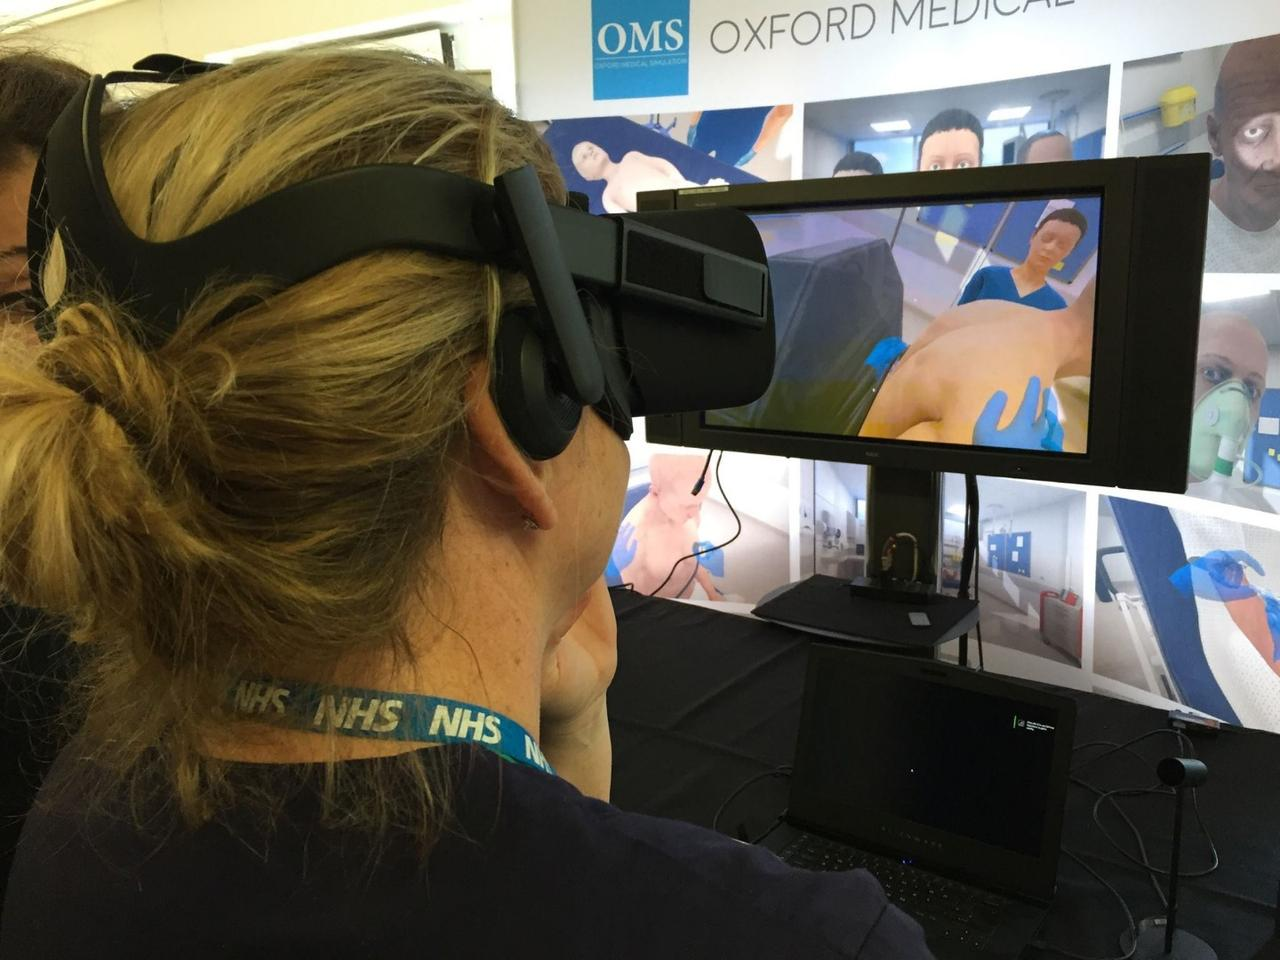 If successful, the virtual reality training program will be rolled out across the UK during 2019